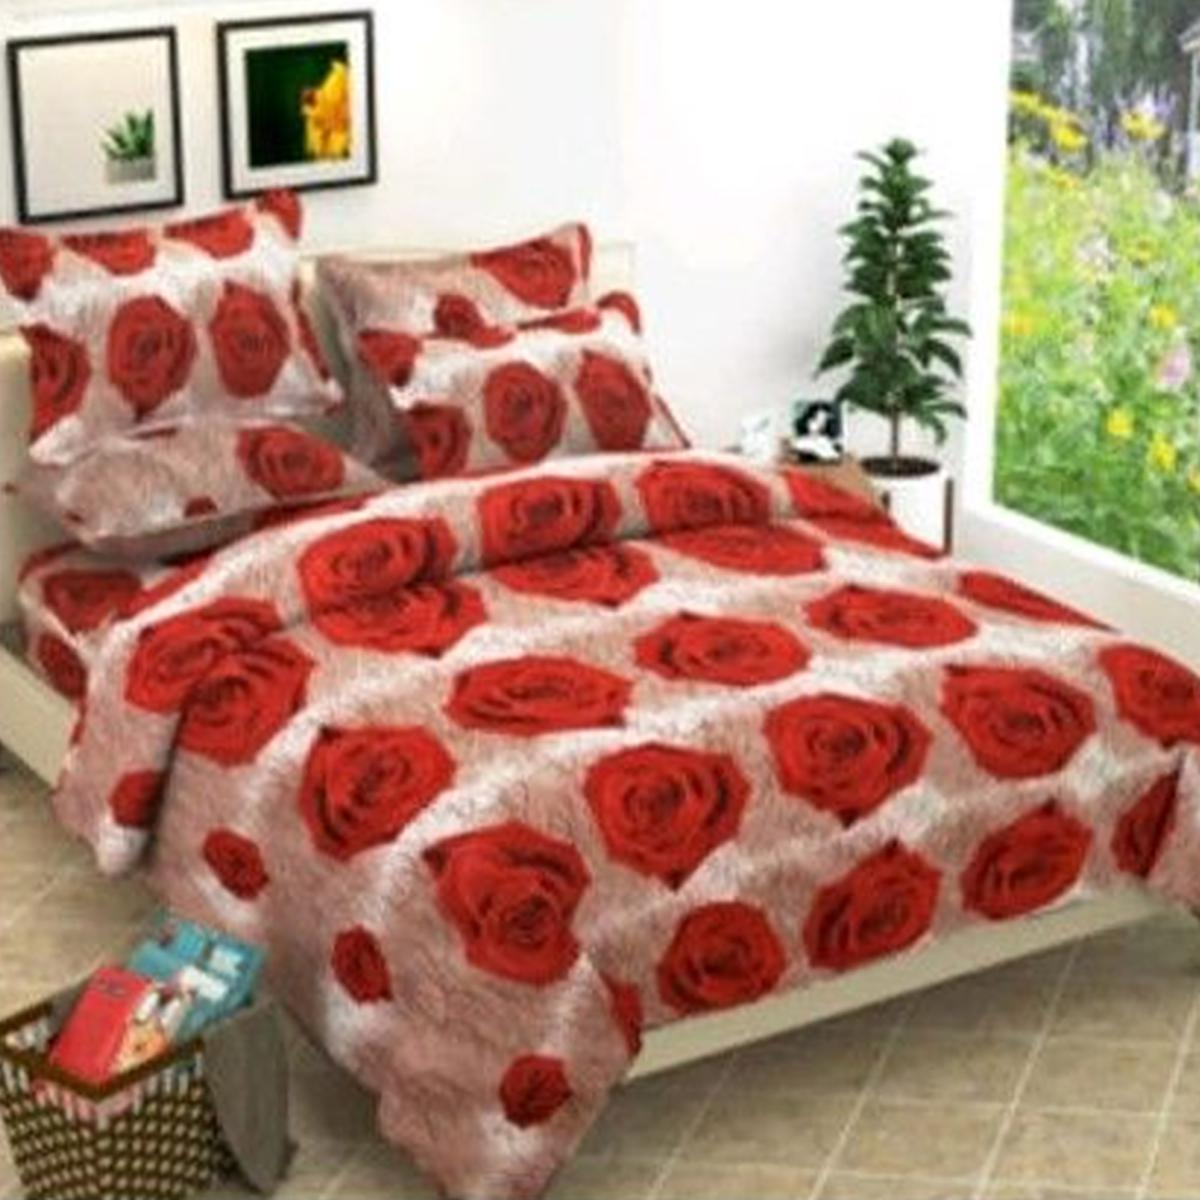 Adirav - Beige-Red Colored 3D Printed Single Cotton Bedsheet With 2 Pillow Cover